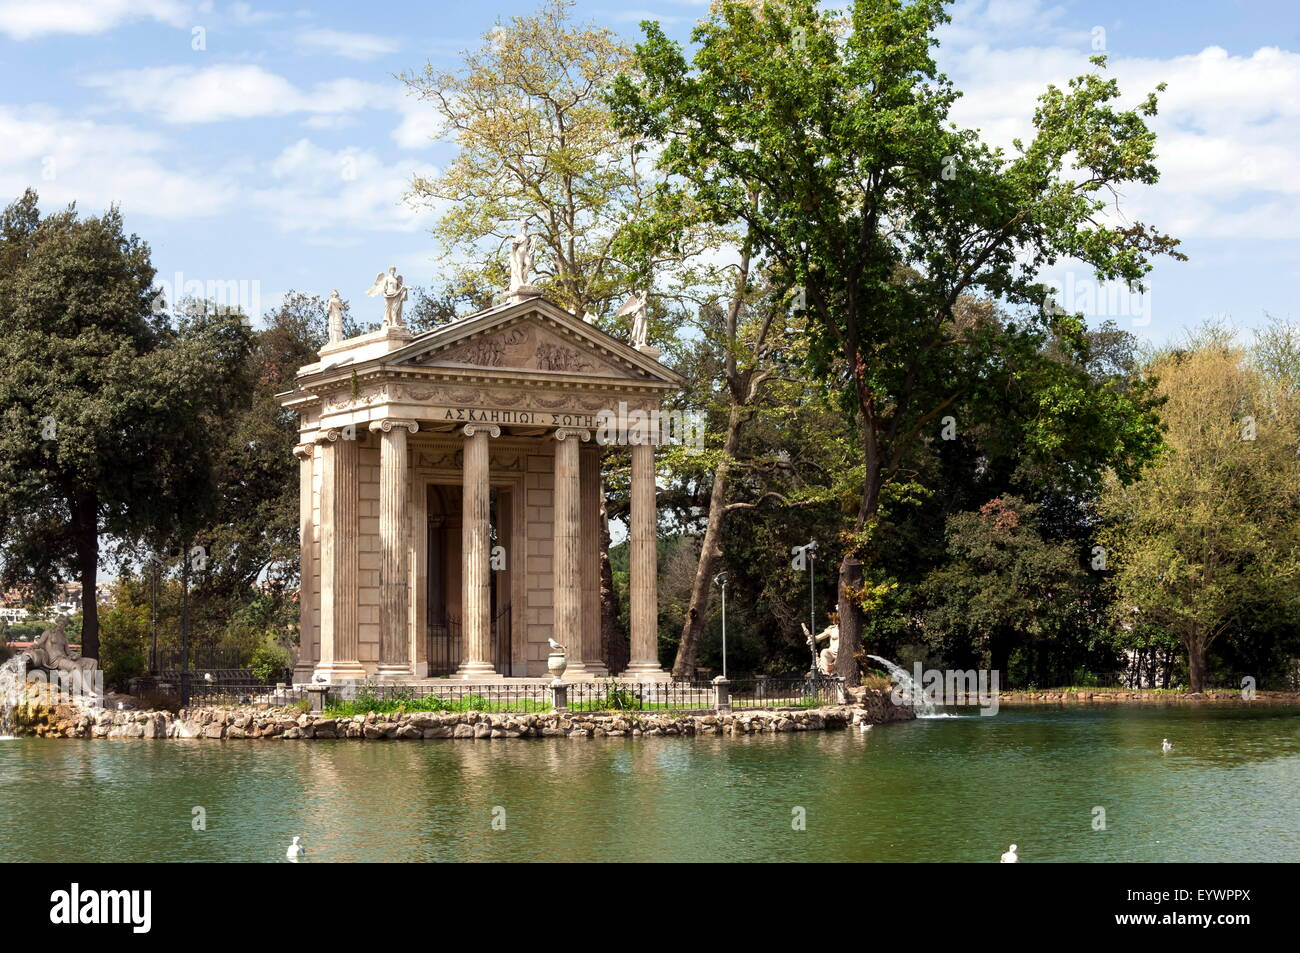 Ionic Temple of Aesculapius, God of Healing, by an artificial lake in the Borghese Park, Rome, Lazio, Italy - Stock Image